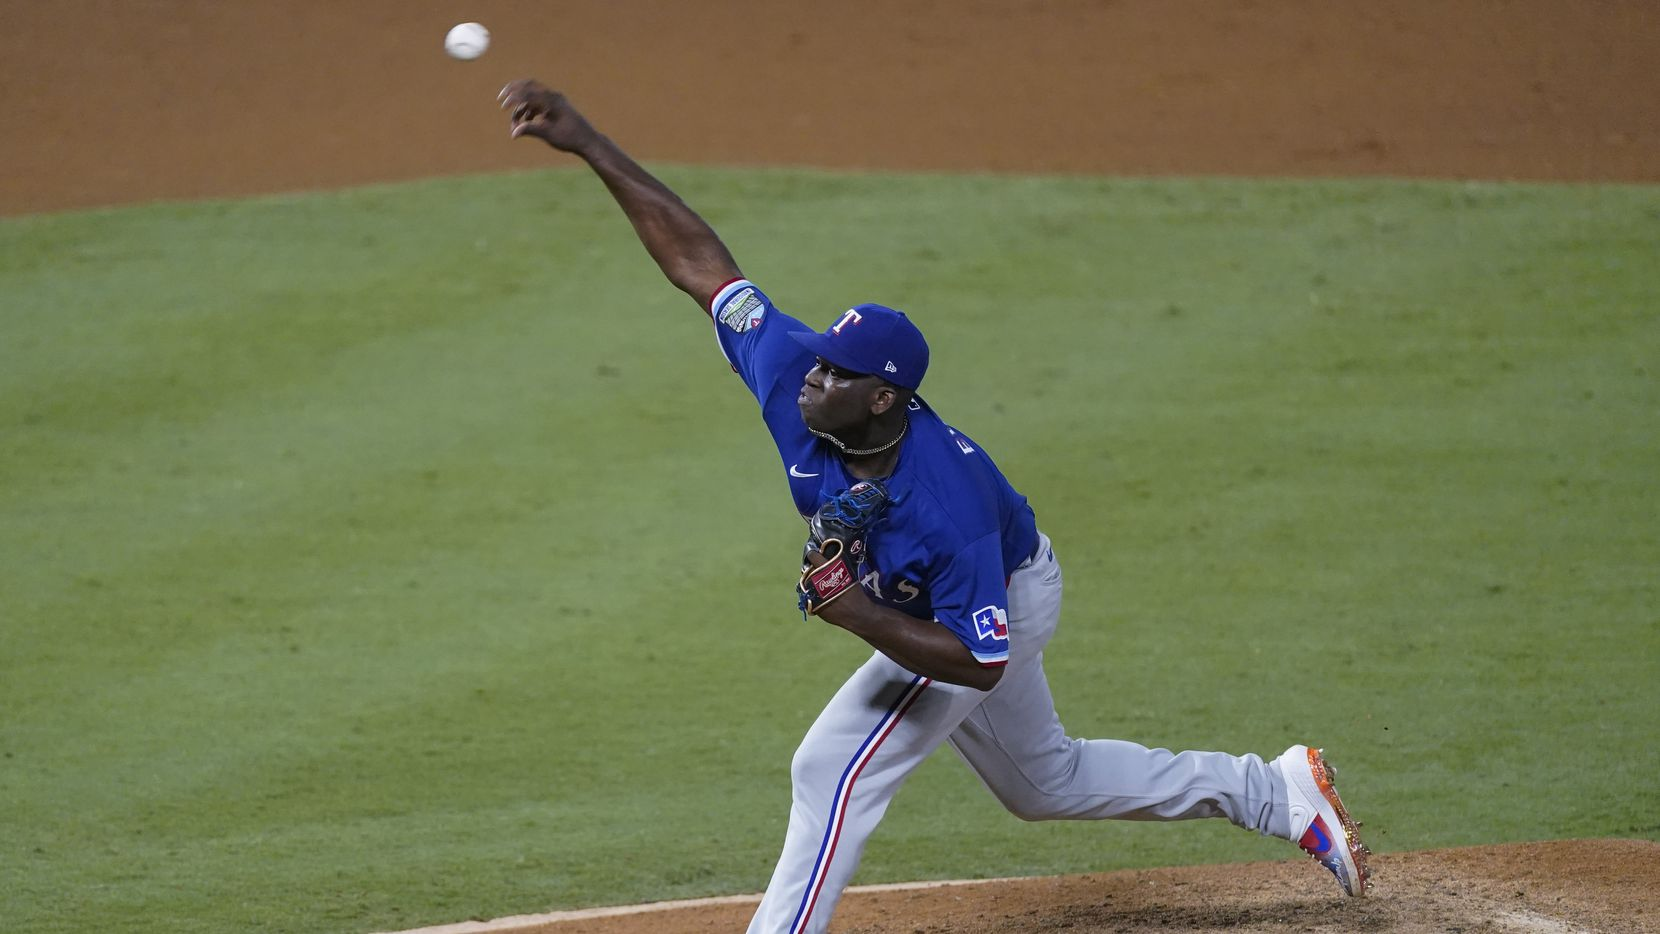 Texas Rangers relief pitcher Demarcus Evans throws during the seventh inning of the team's baseball game against the Los Angeles Angels on Friday, Sept. 18, 2020, in Anaheim, Calif. (AP Photo/Ashley Landis)